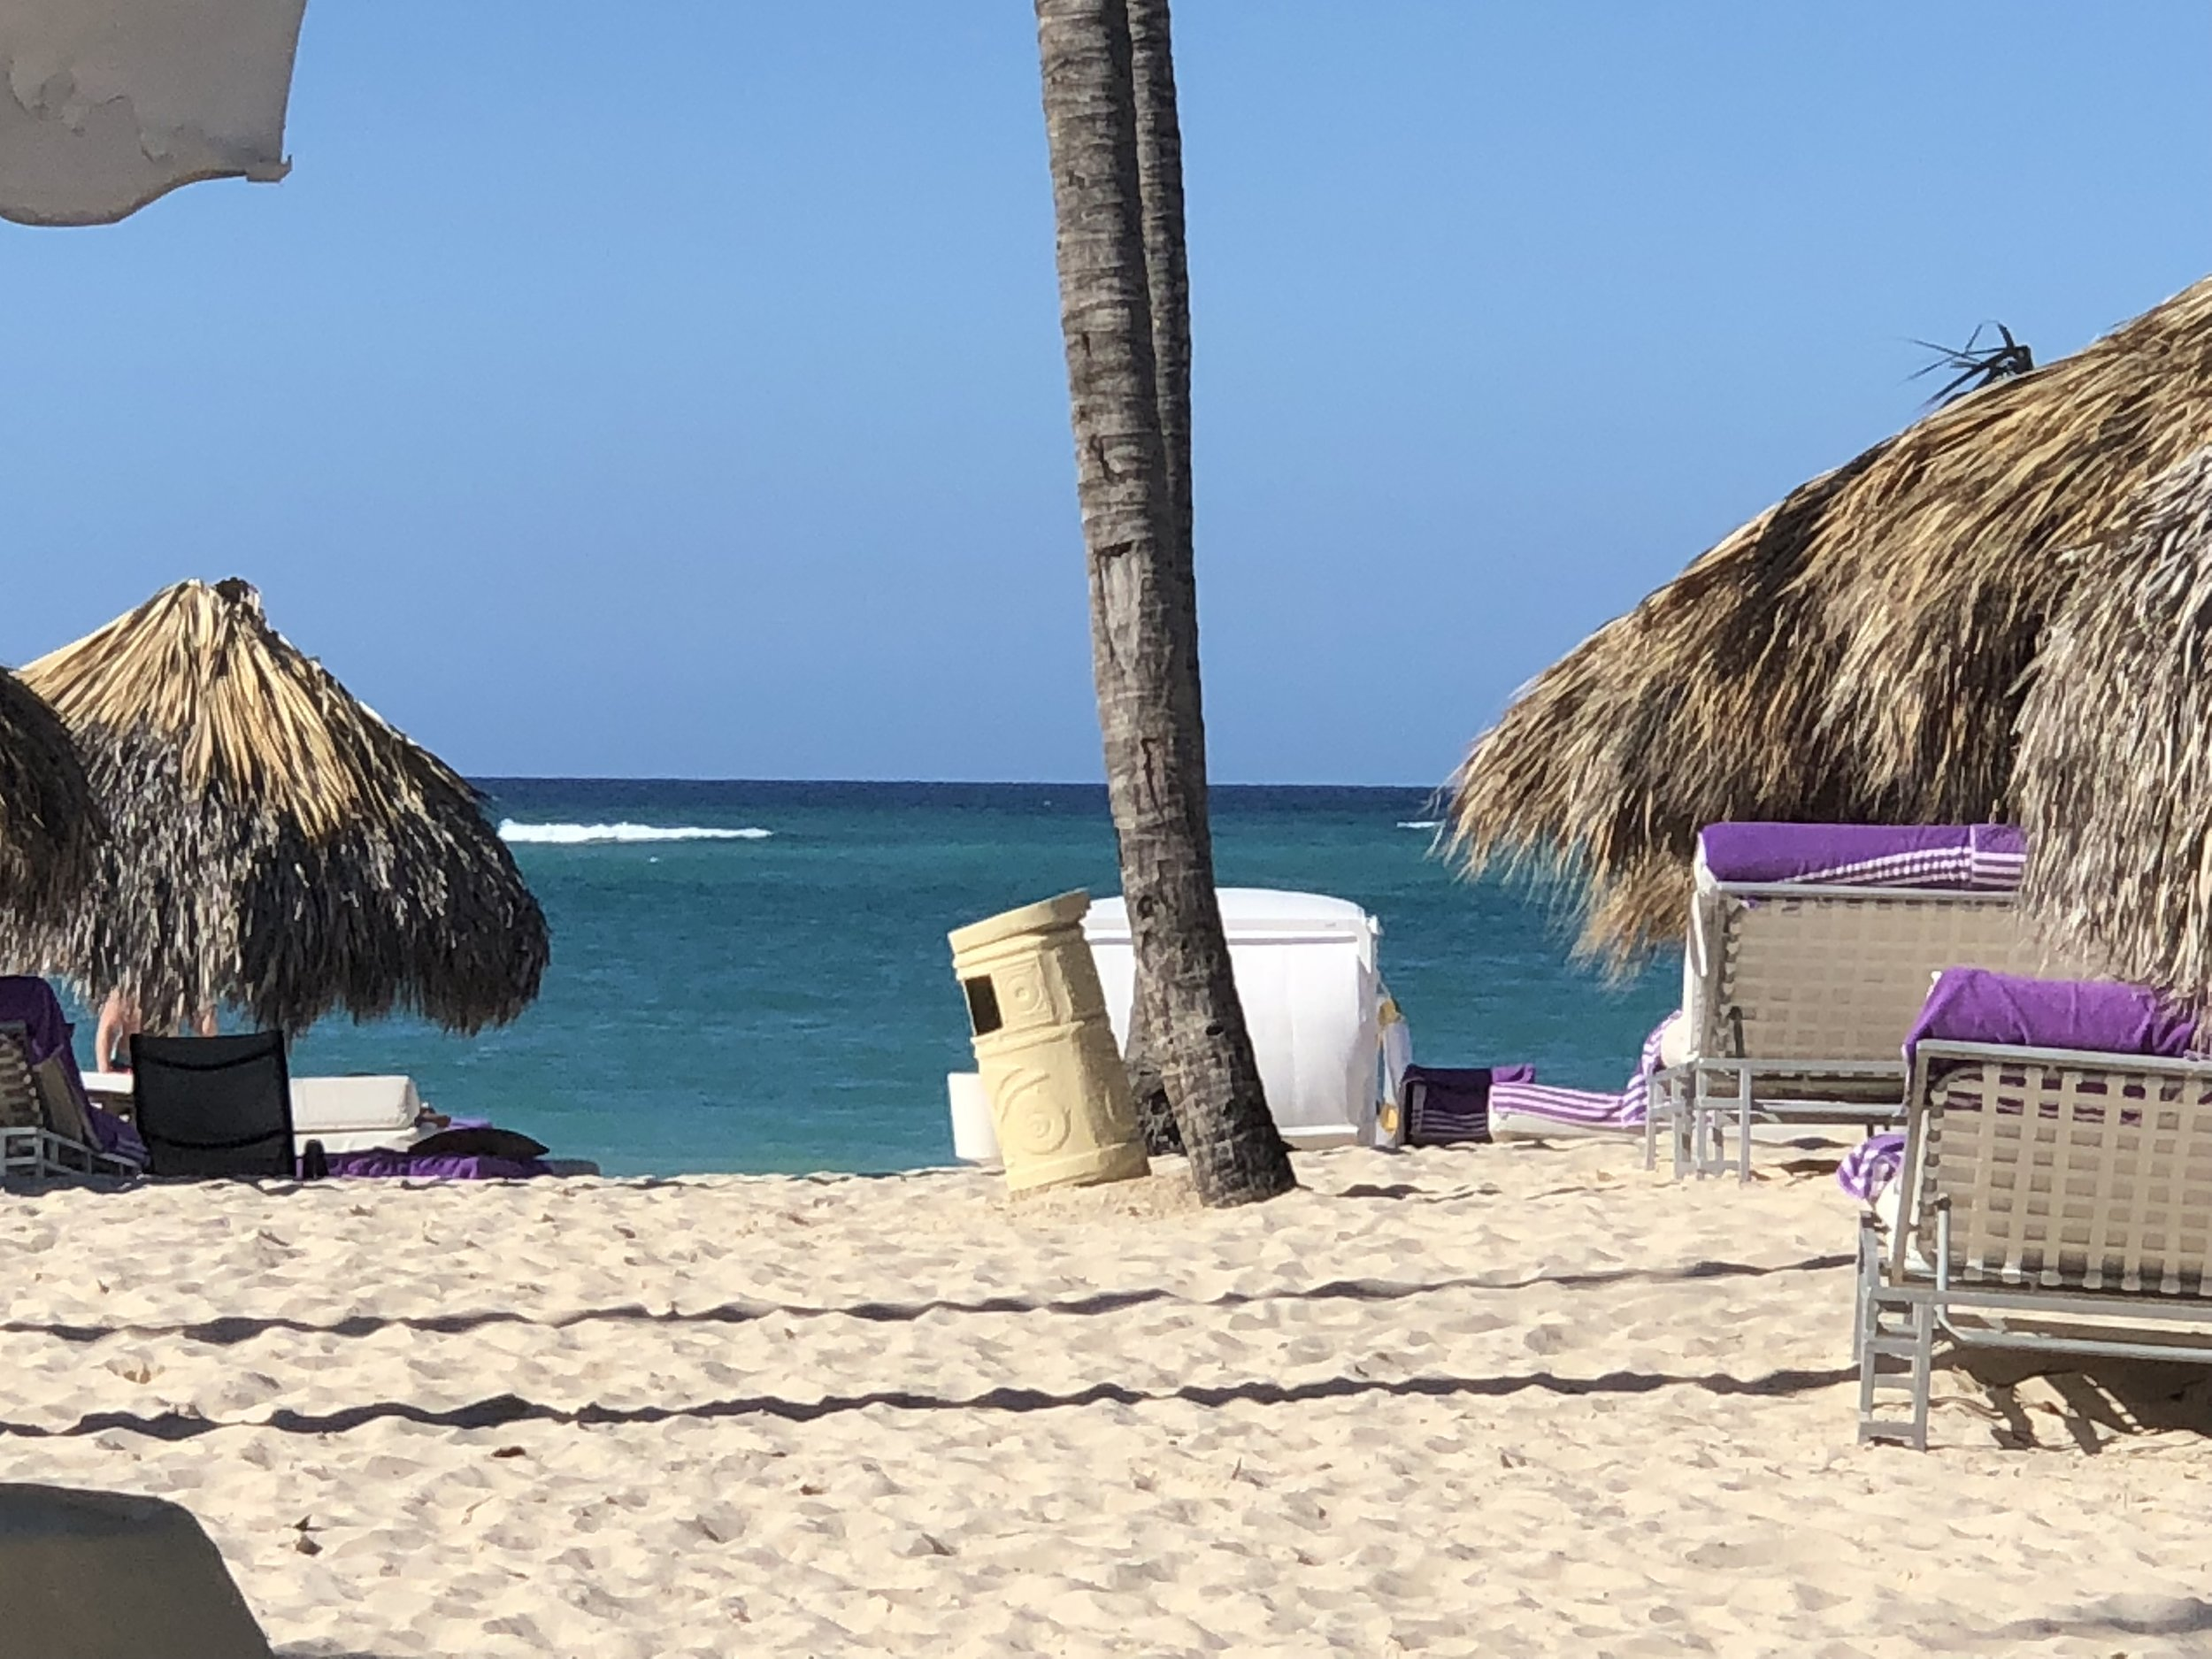 Various seating available on the beach.